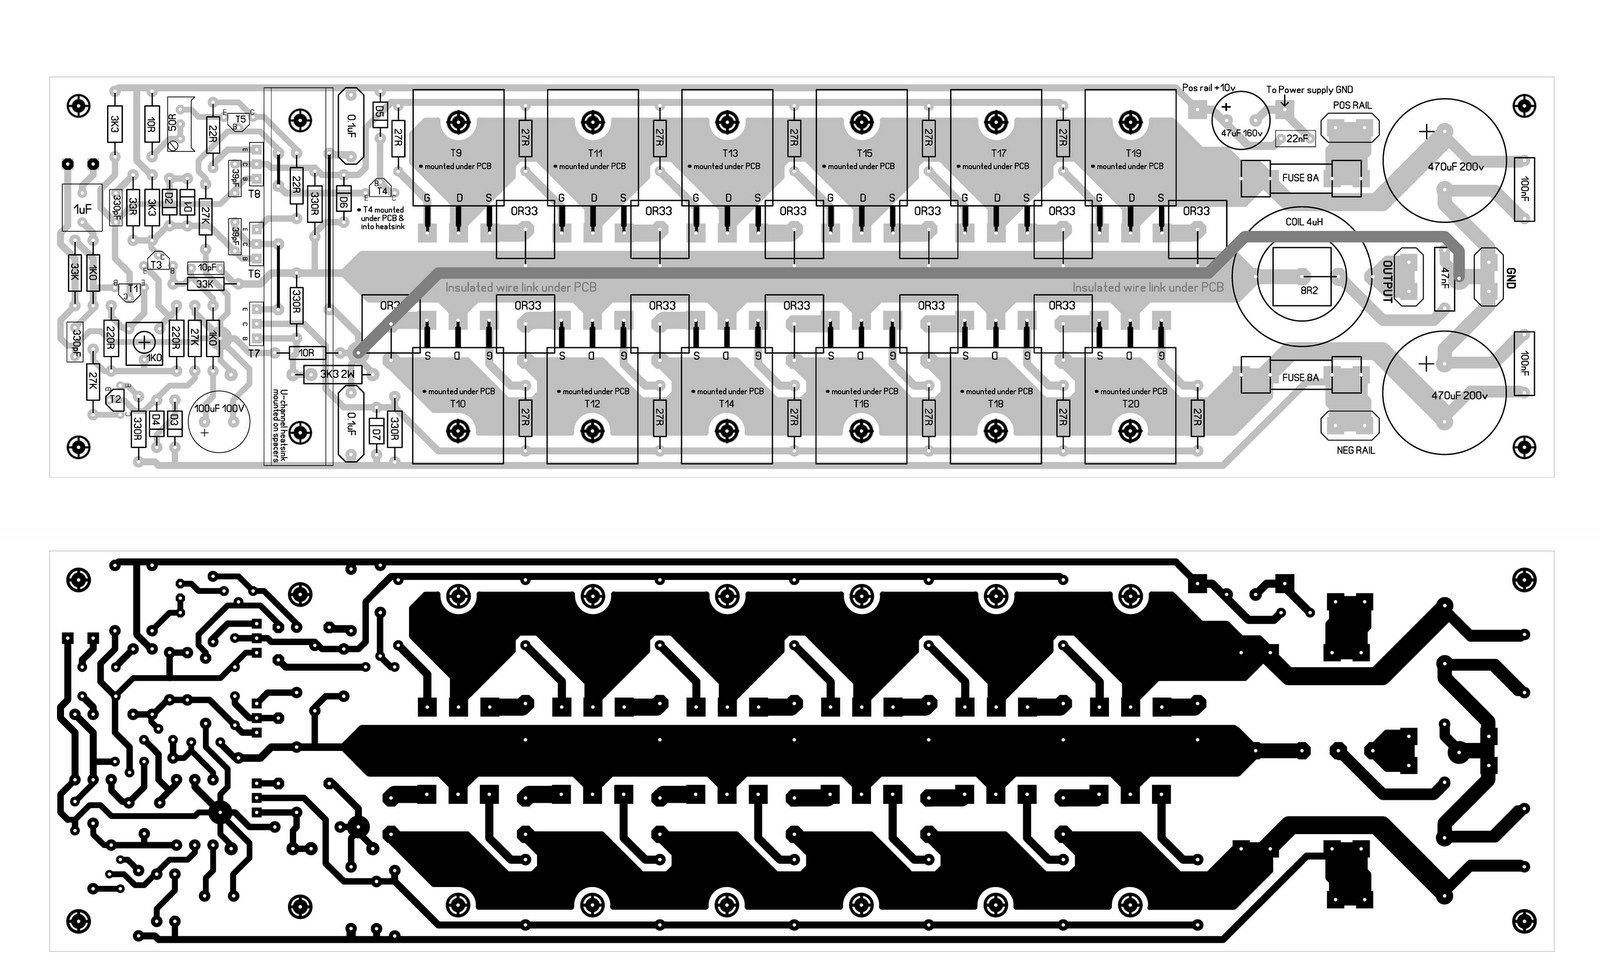 600w mosfet power amplifier pcb design [ 1600 x 974 Pixel ]